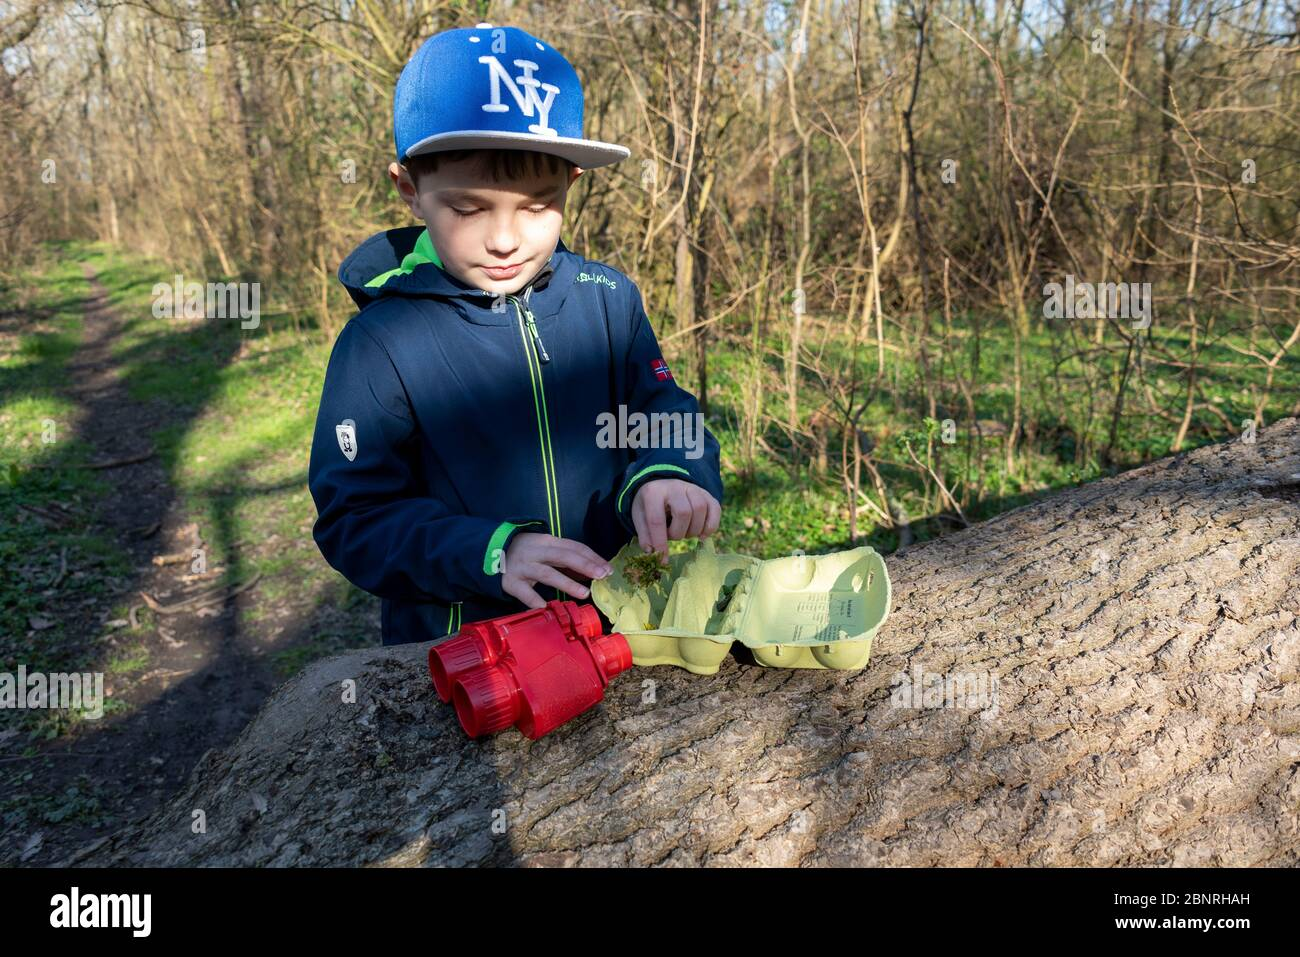 Boy lays moss in an egg packaging, a forest game to find leaves, ferns, mosses, feathers and small branches. Game idea in times of Corona. Stock Photo